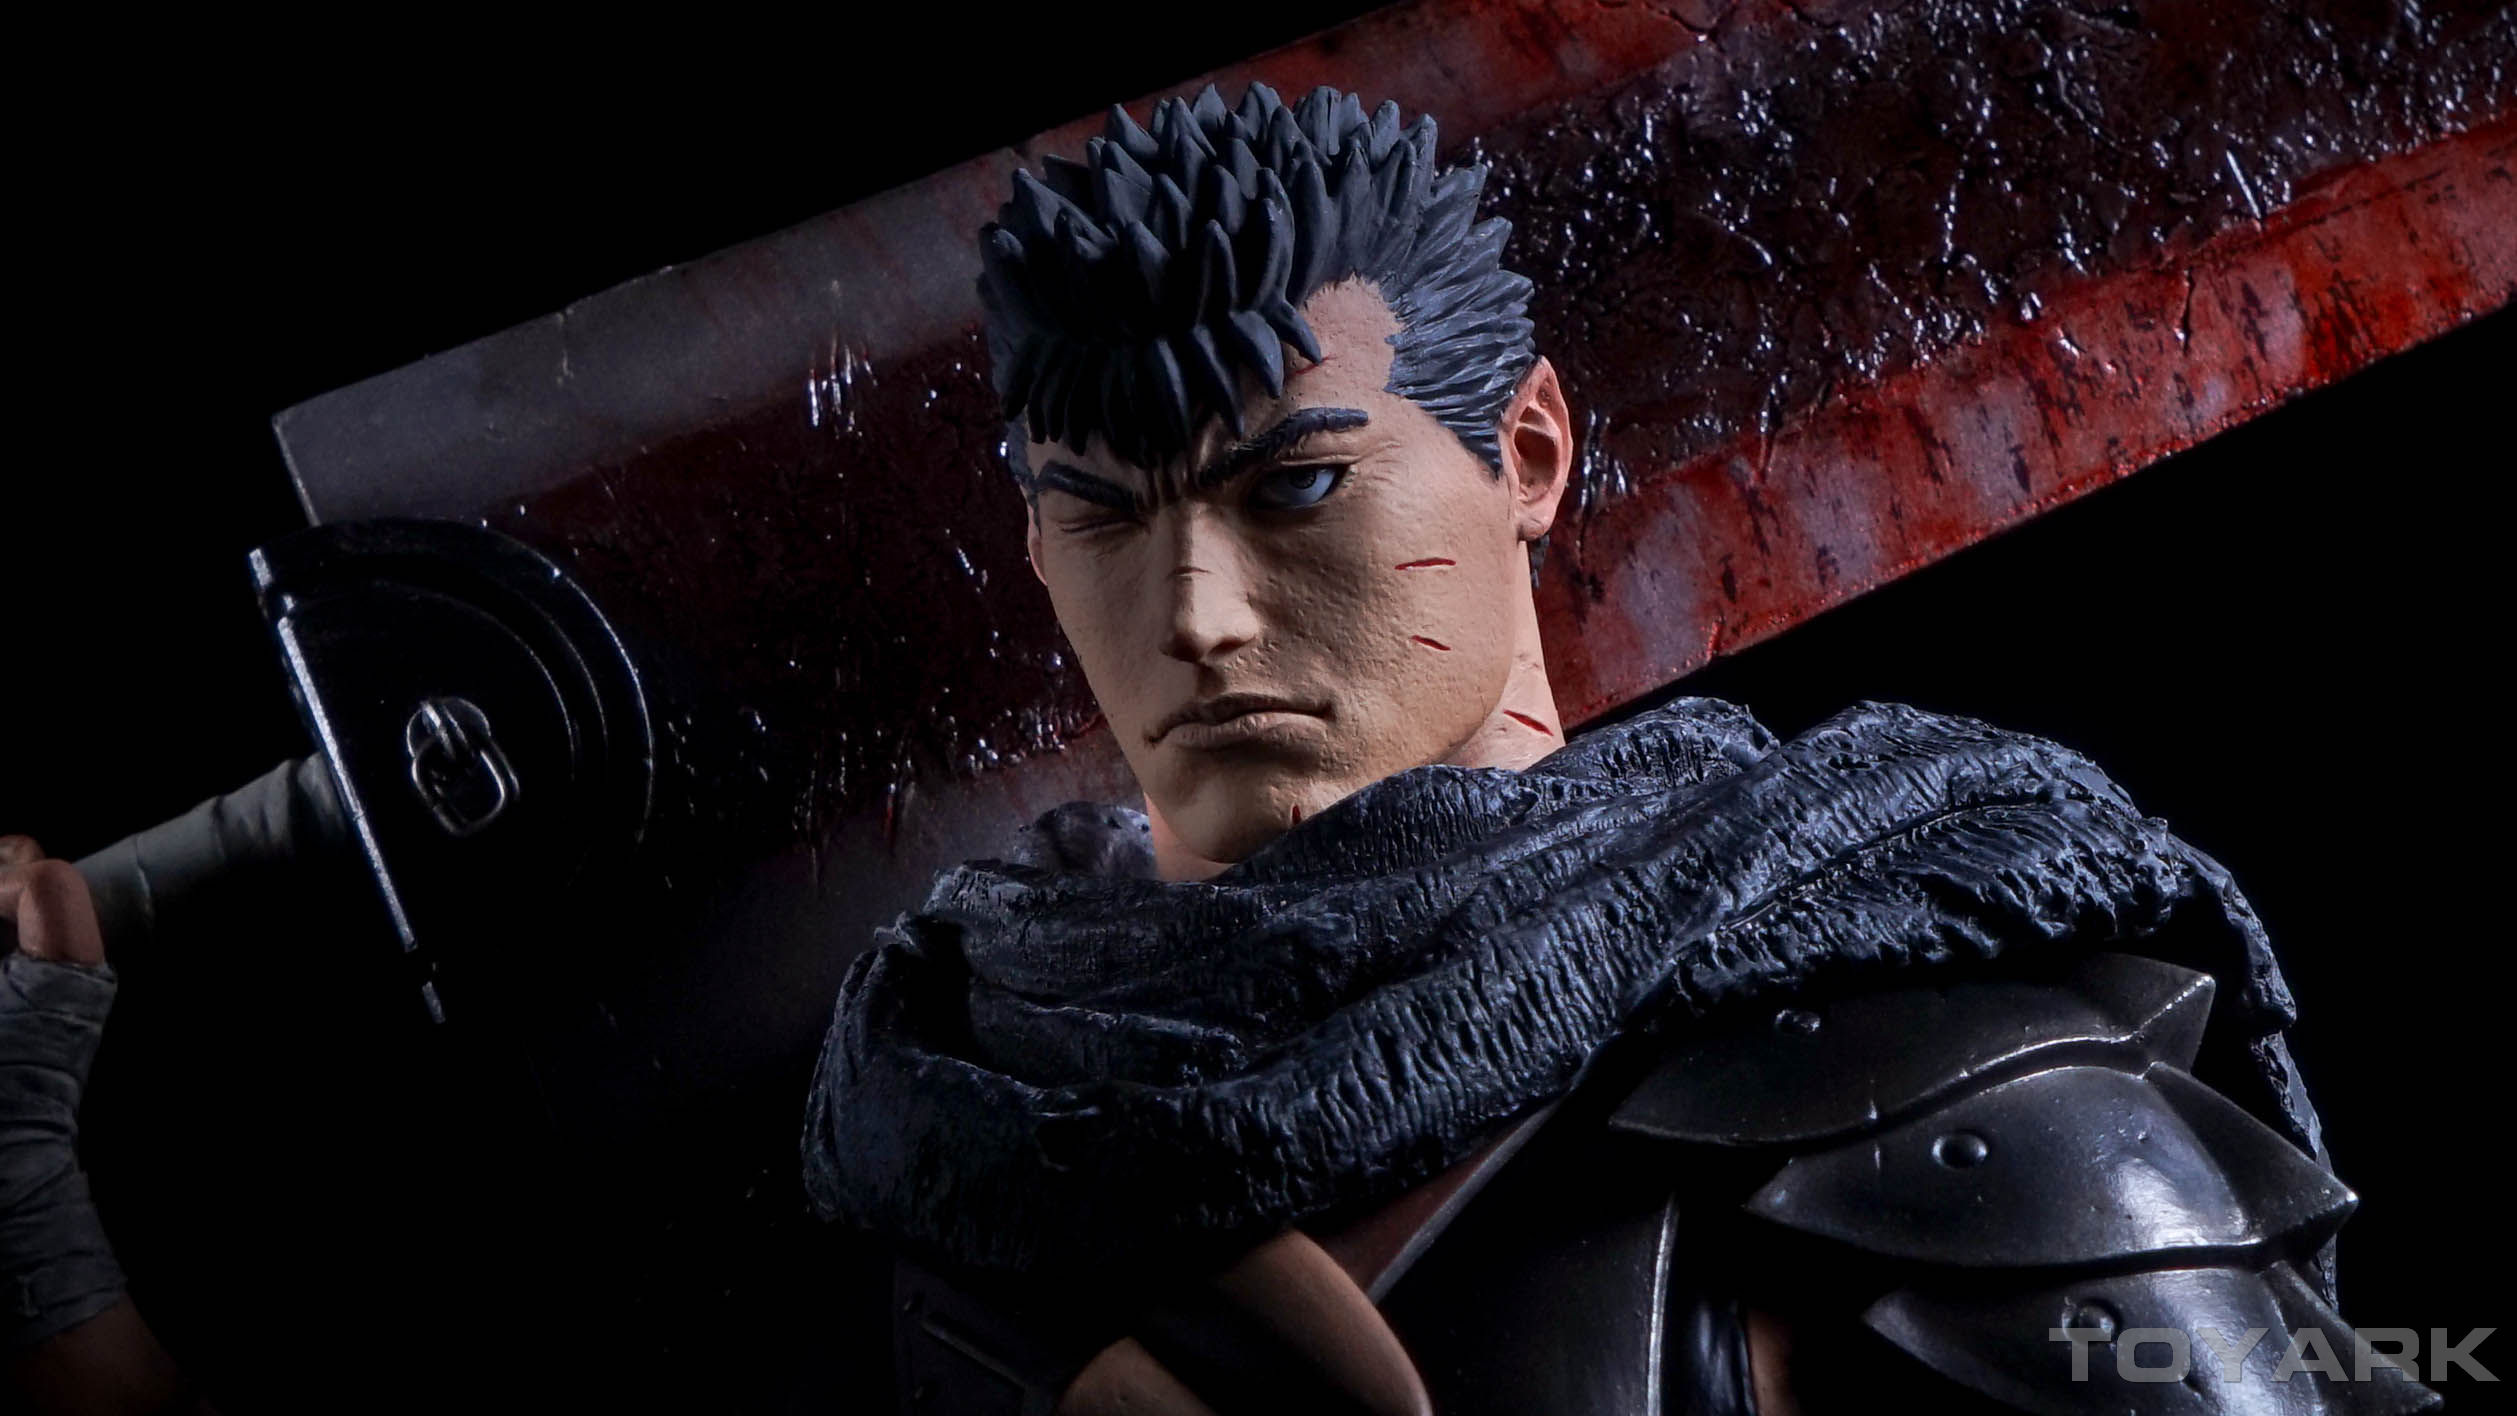 http://news.toyark.com/wp-content/uploads/sites/4/2015/11/Berserk-Guts-Statue-054.jpg